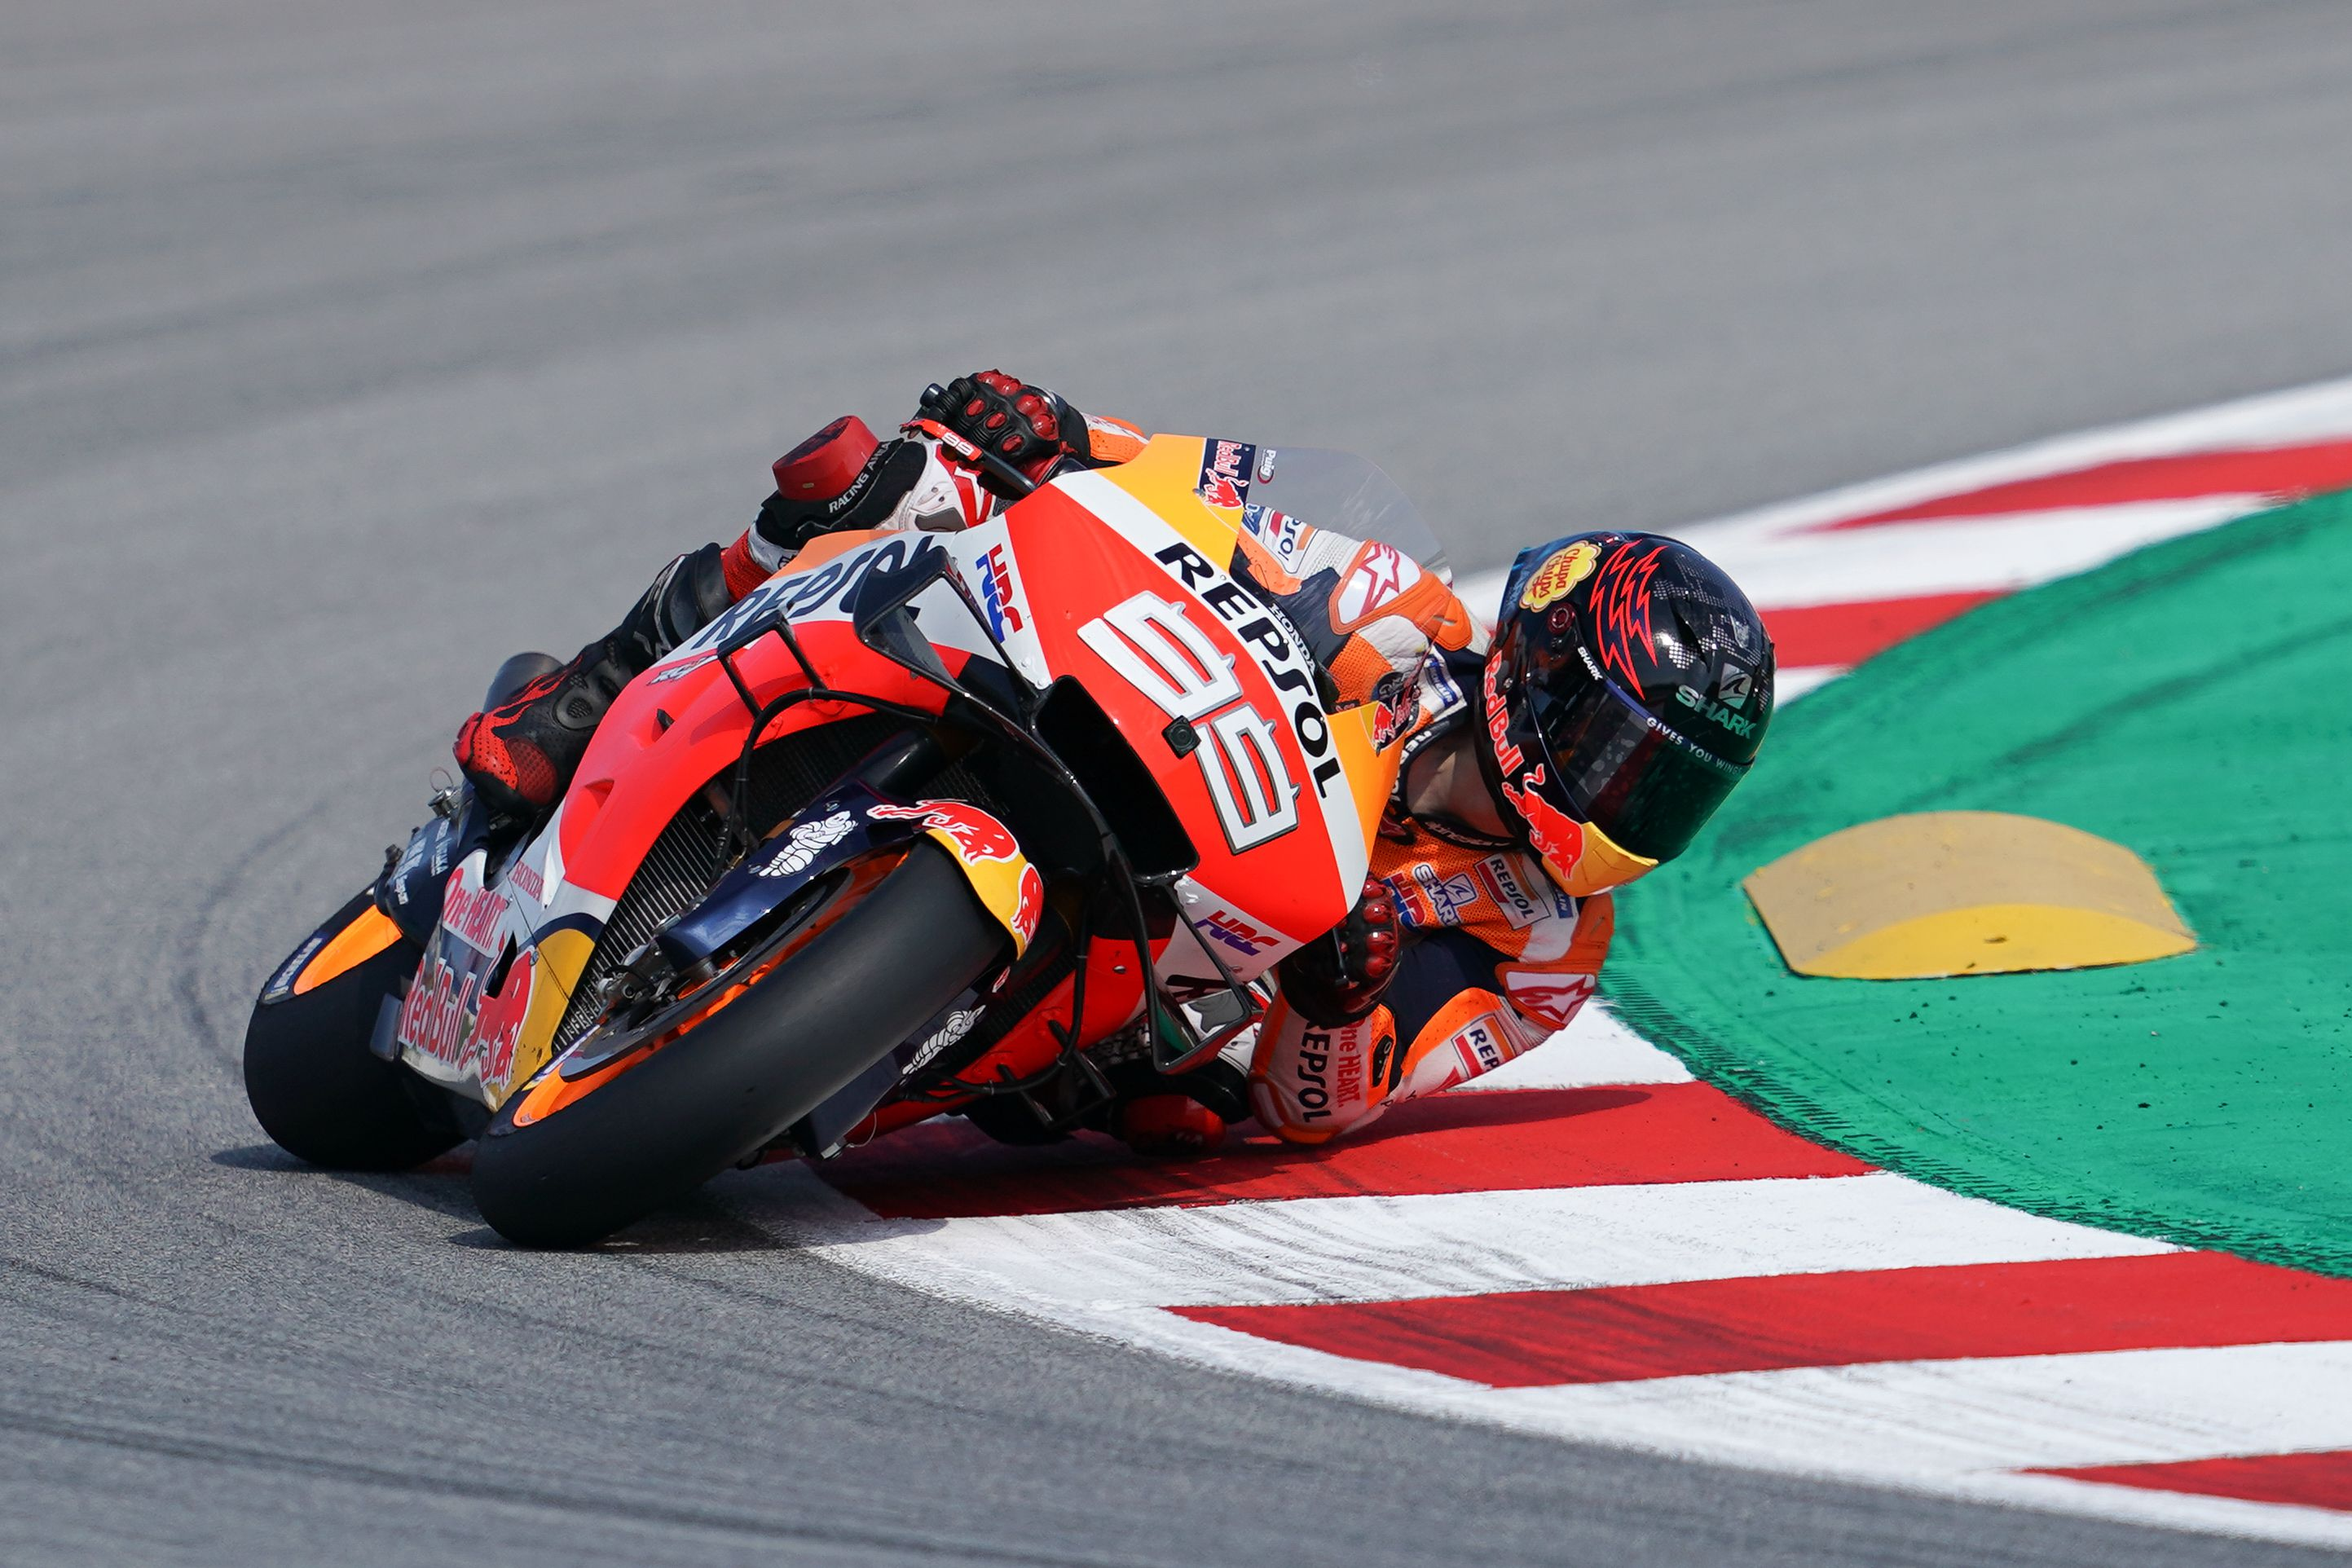 After 18 seasons of competition, three-time MotoGP world champ Jorge Lorenzo announces his retirement from professional racing. He'll be remembered for his smooth, fluid riding style.